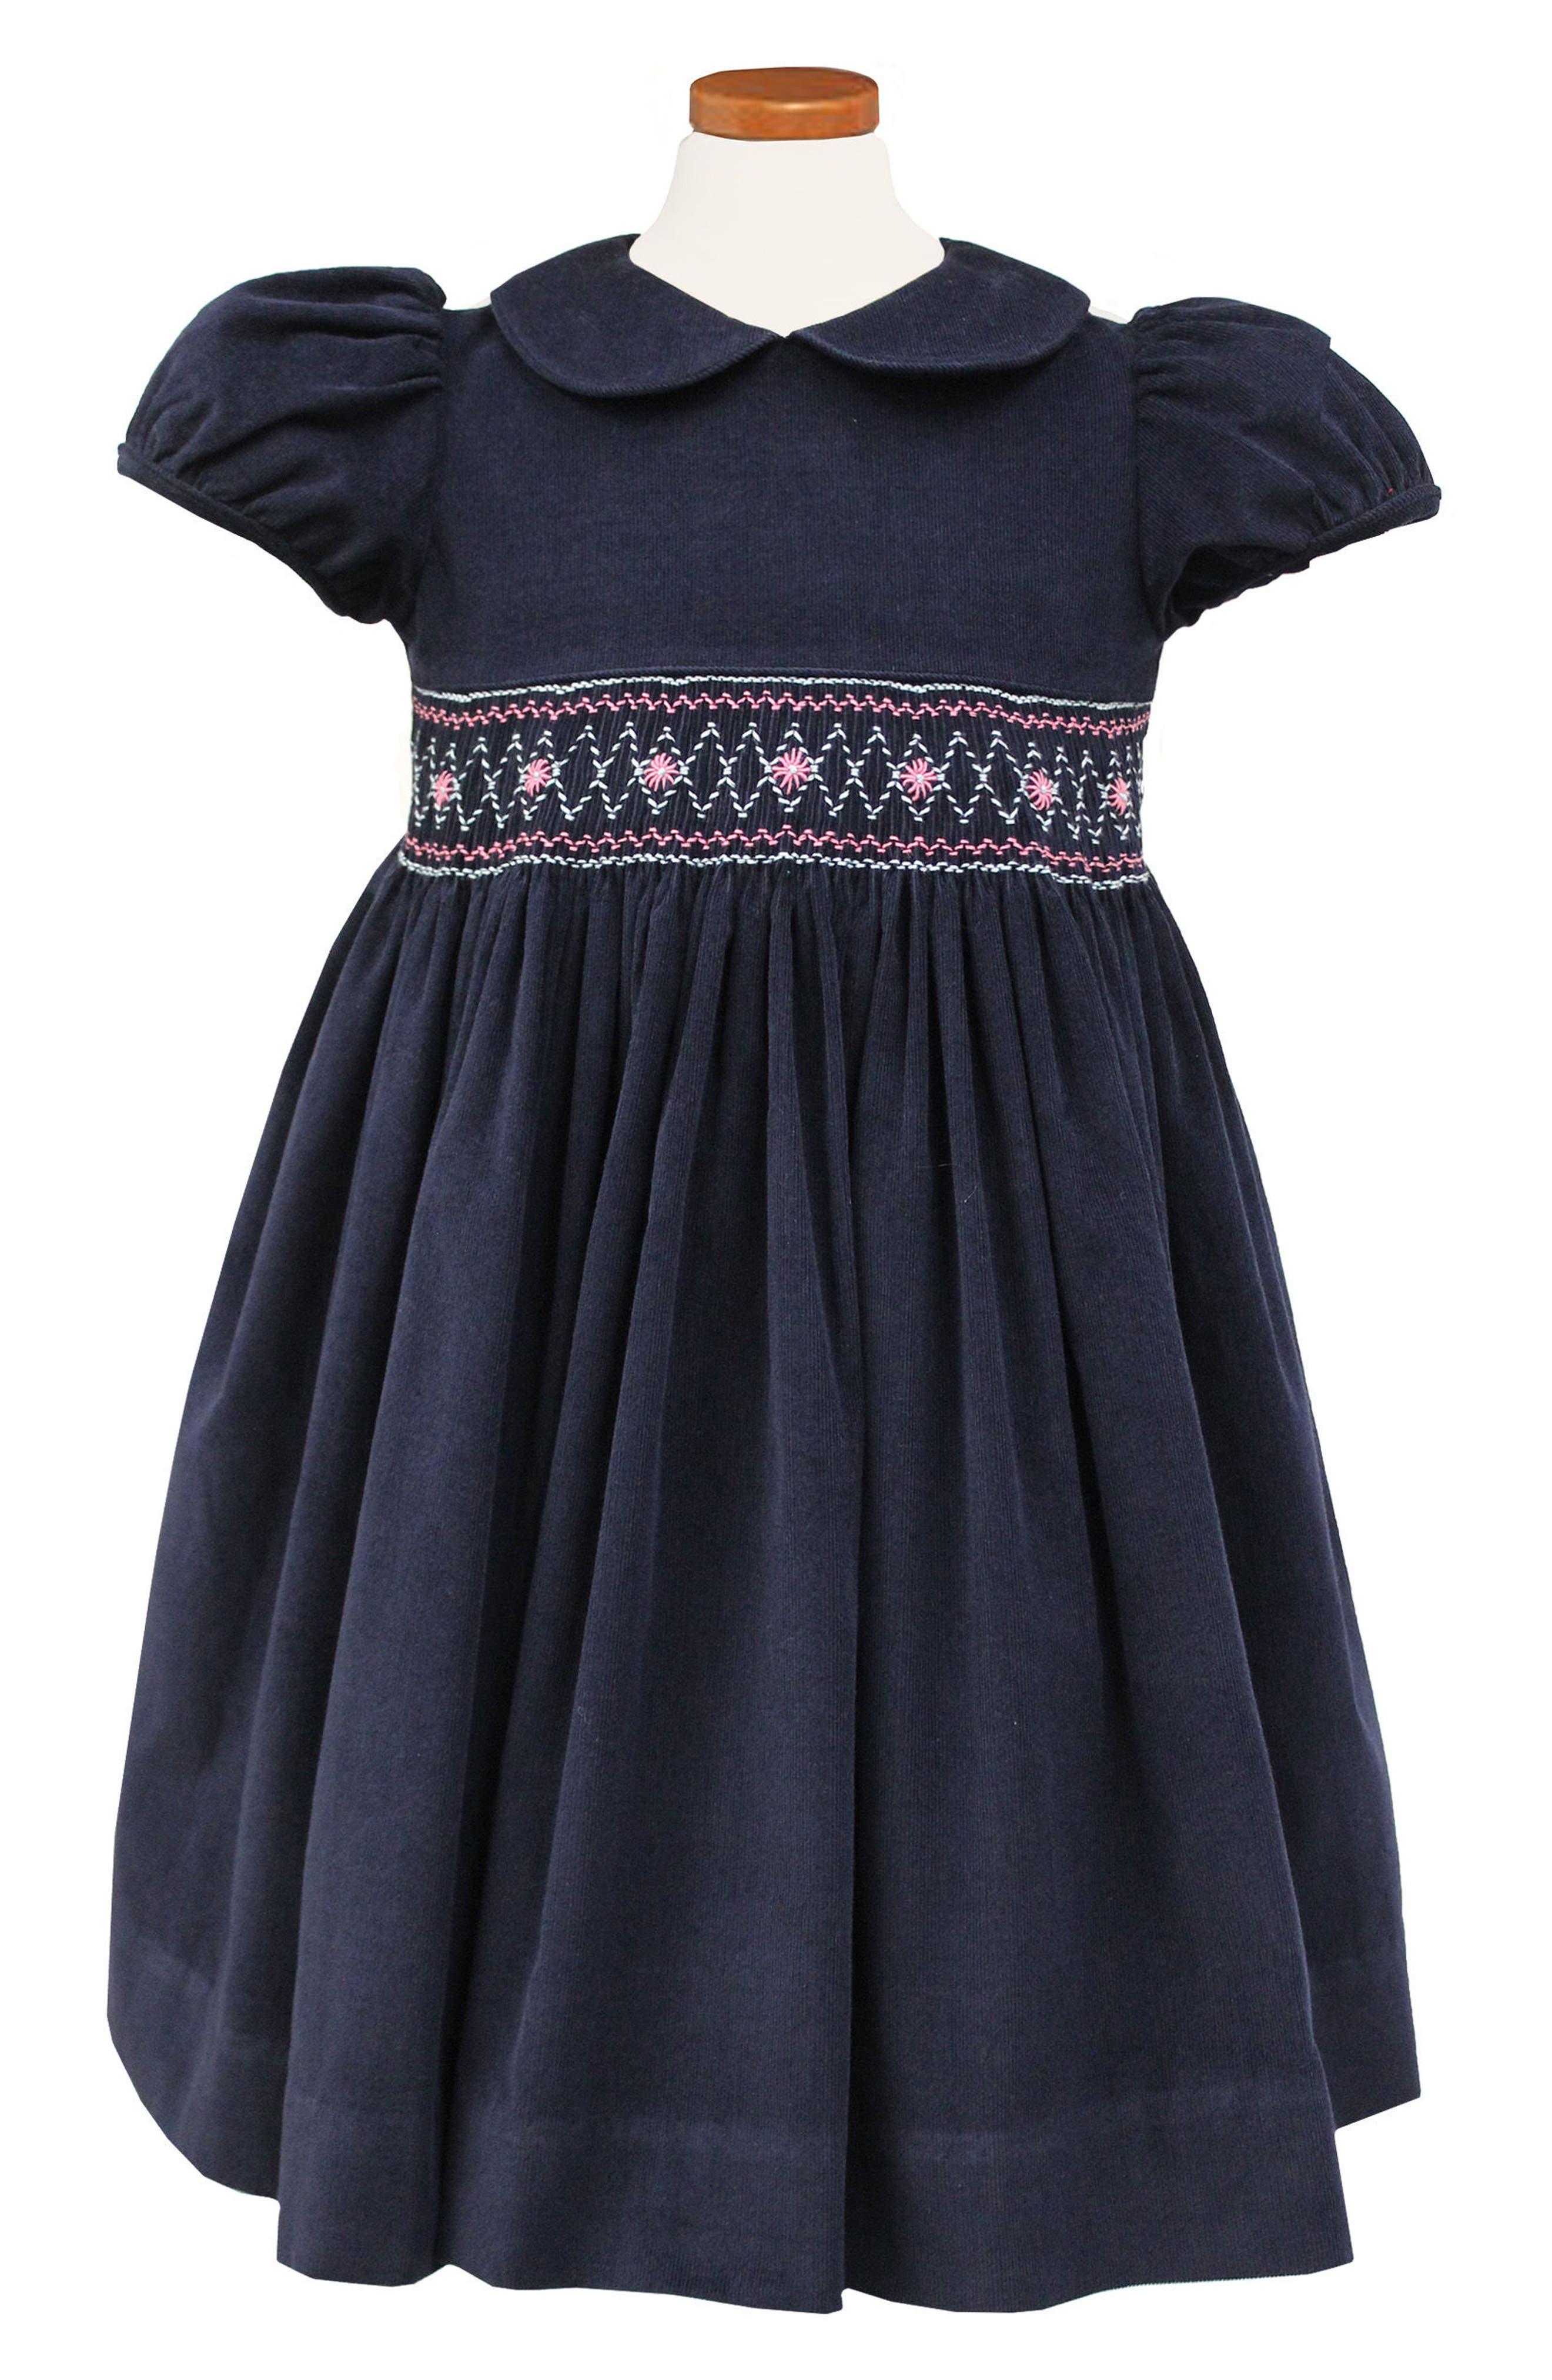 Embroidered Smocked Waist Dress,                             Alternate thumbnail 2, color,